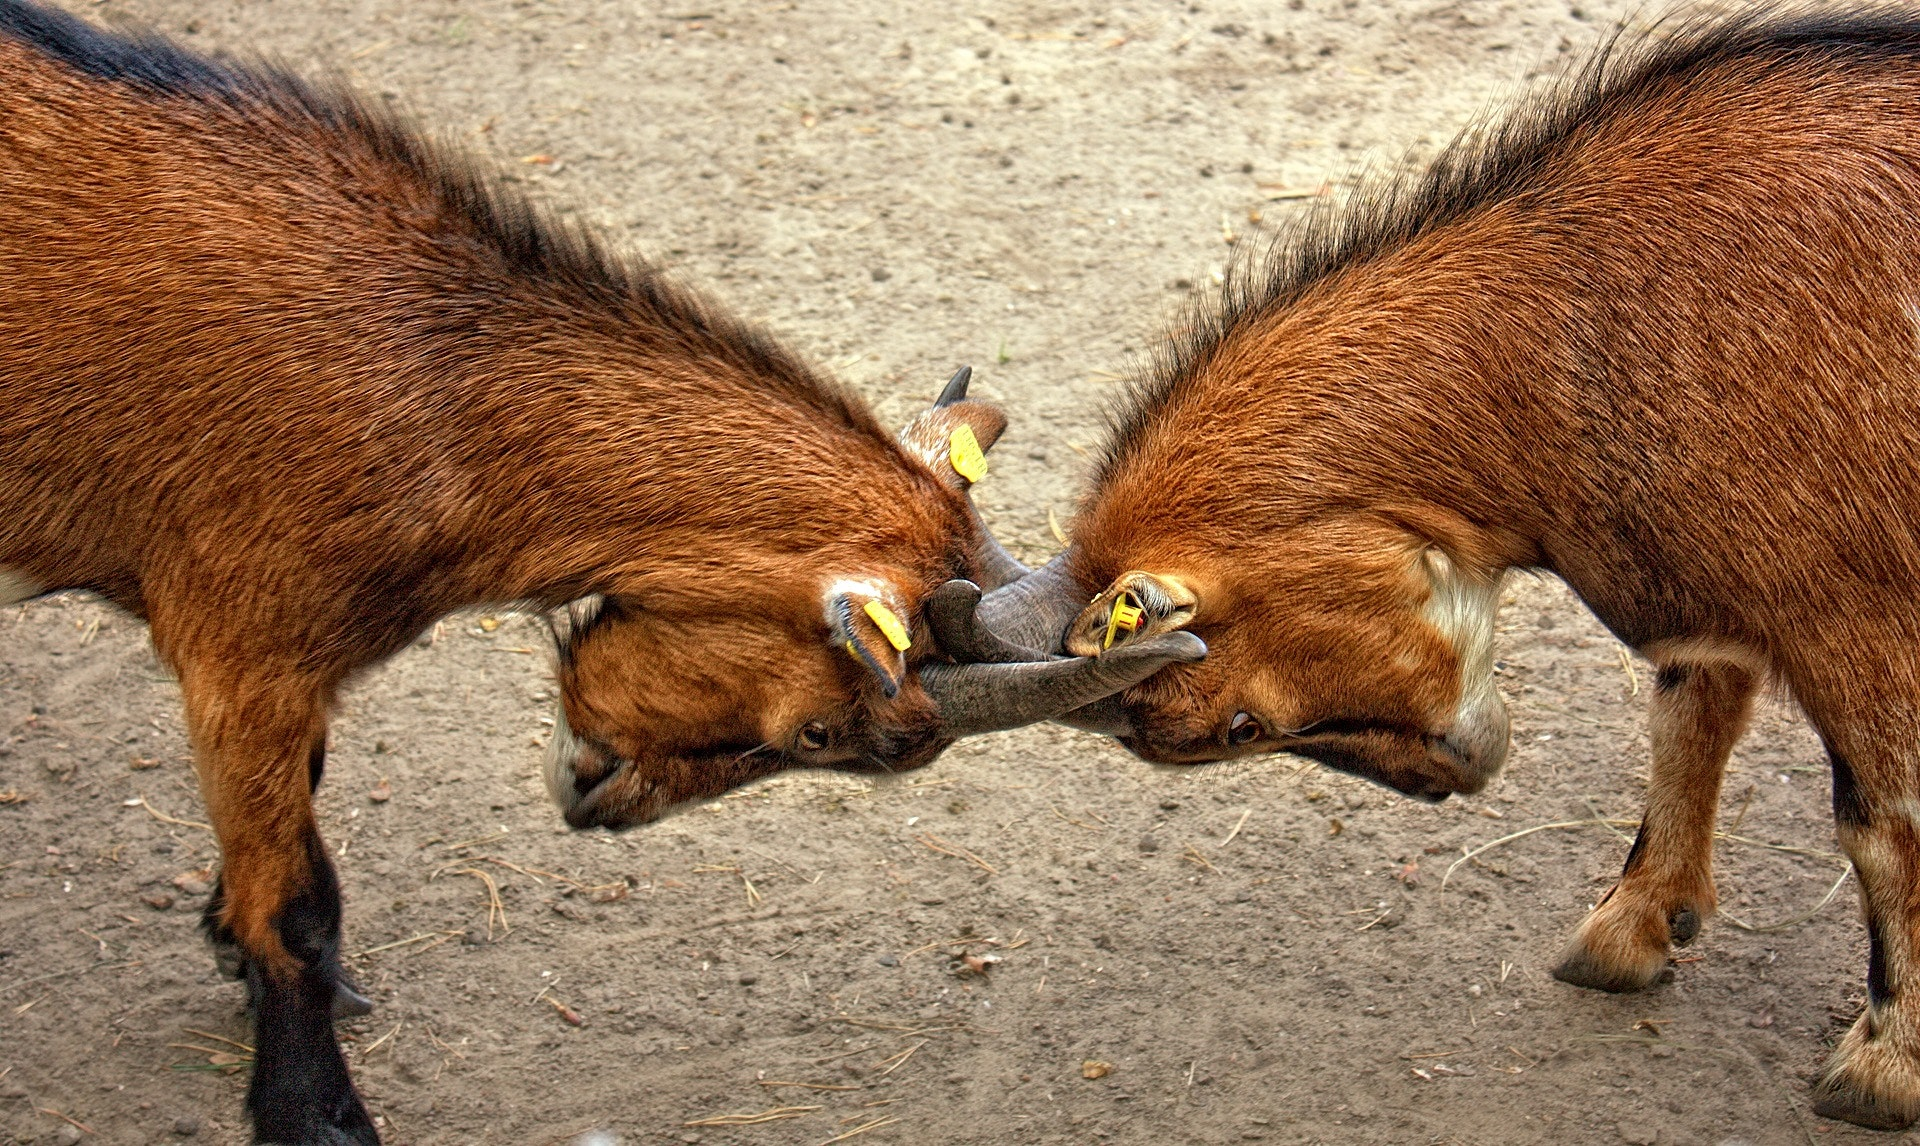 Image is of two brown, horned mammals (possibly goats) butting heads, both their gazes directed at the ground. The background is just beige dirt.